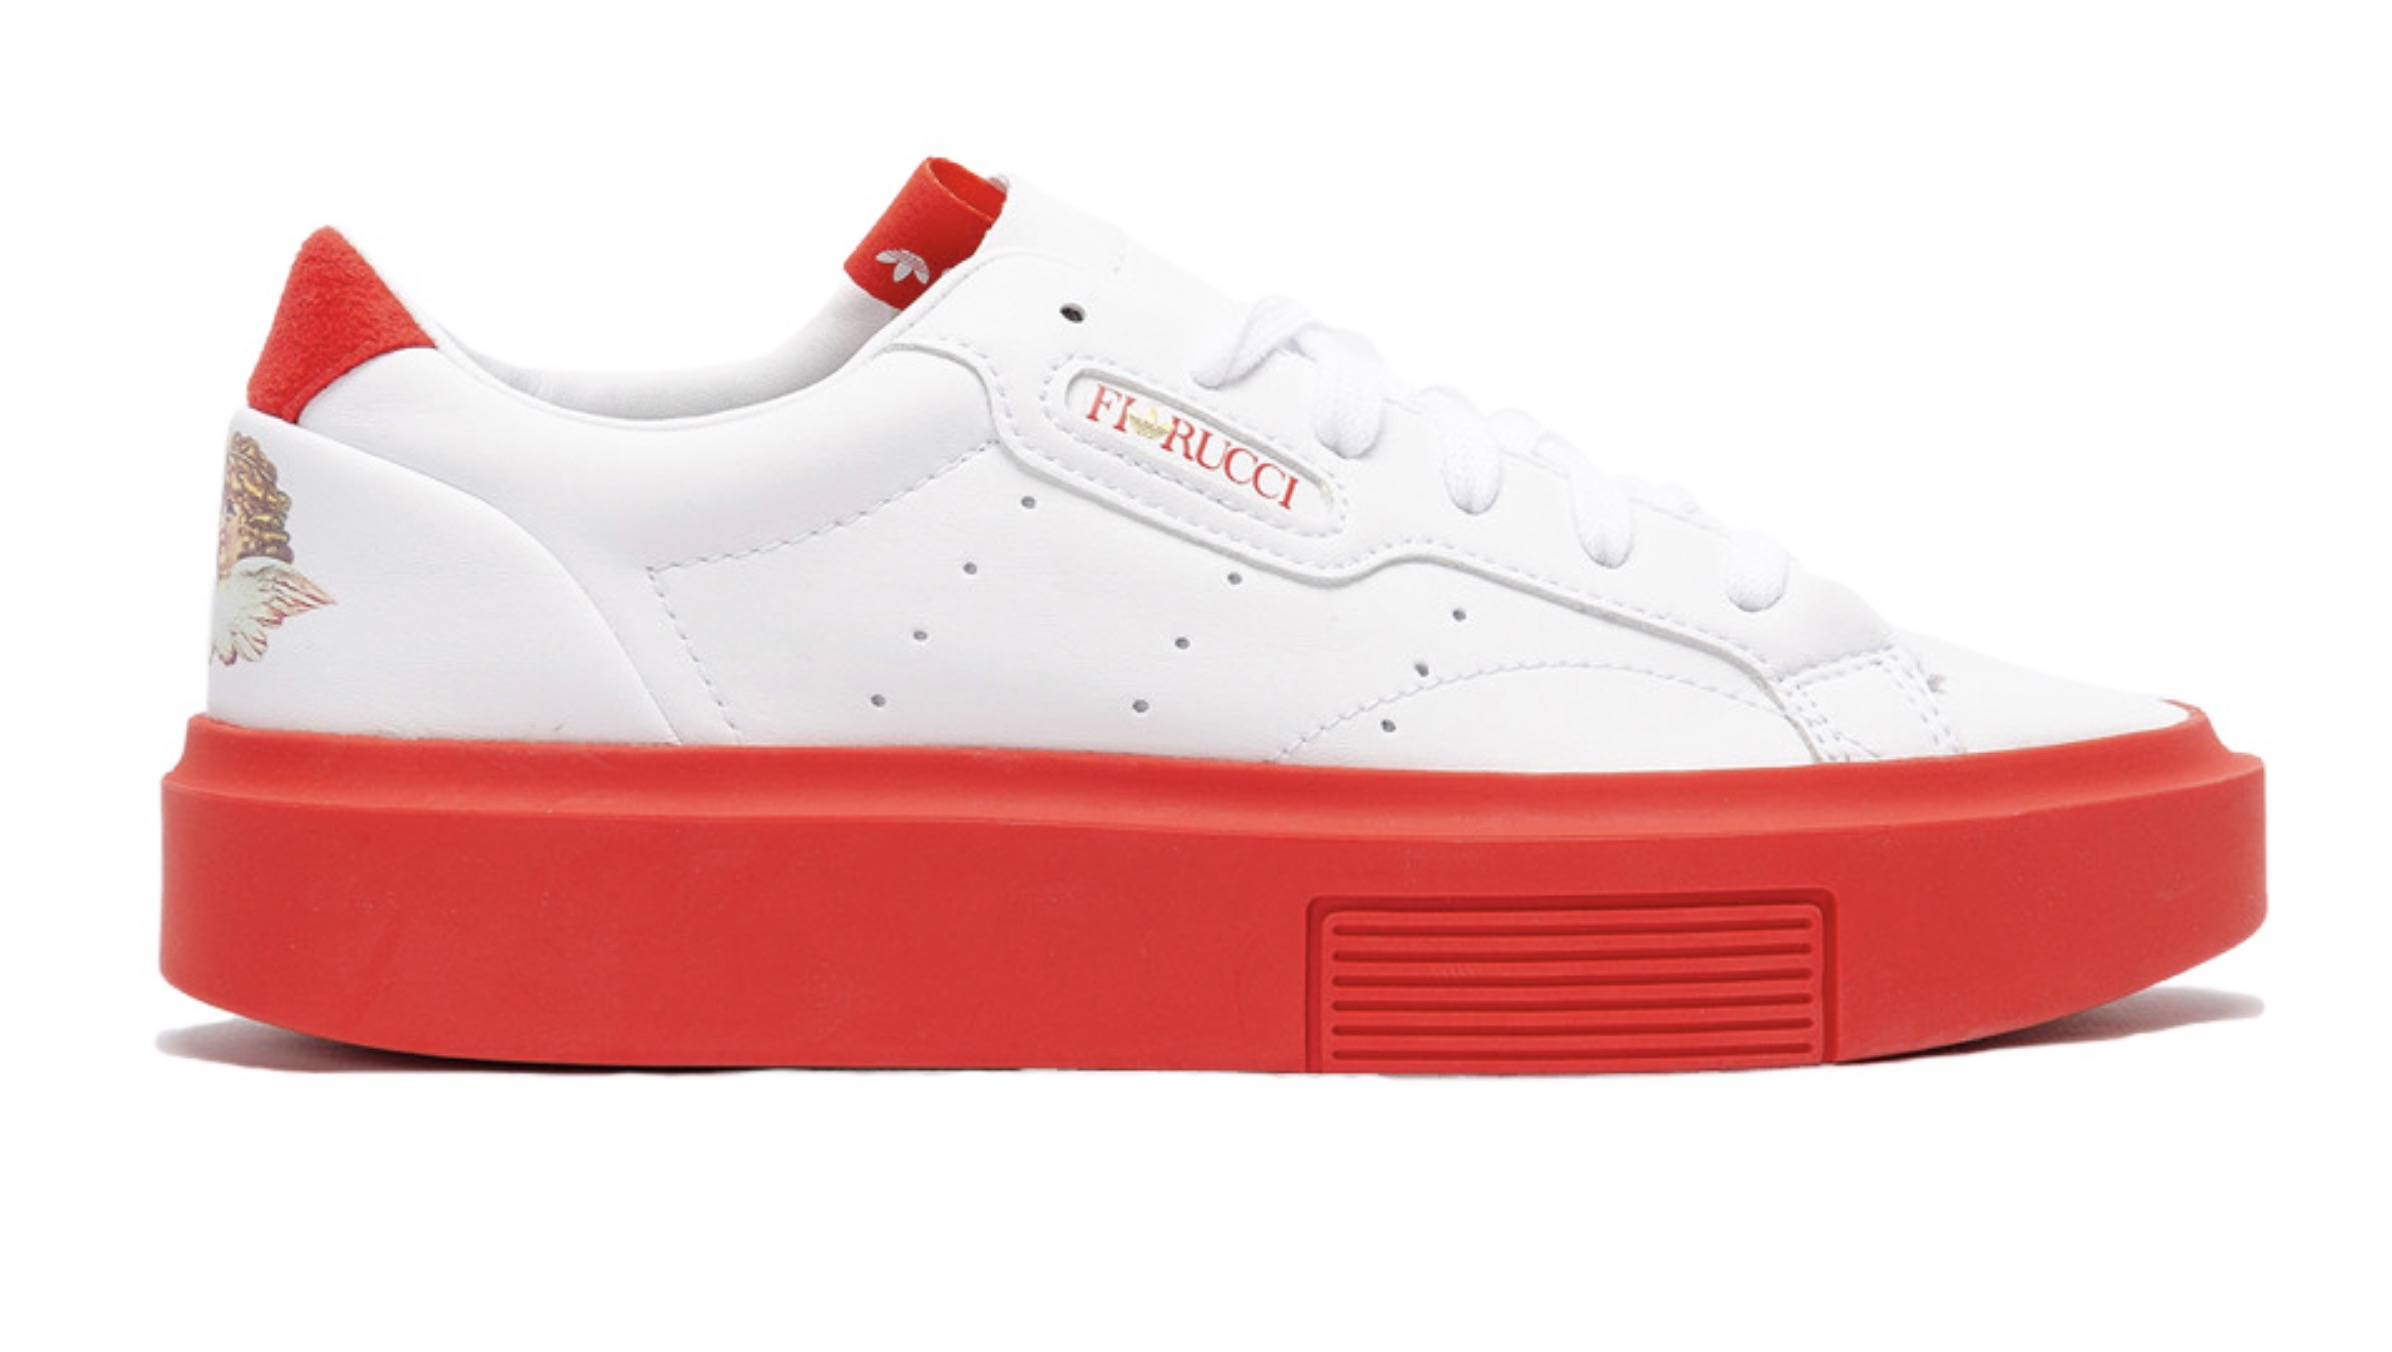 Fiorucci's Latest Collaboration With adidas Is A Sleek Super, In Bold Red Hues